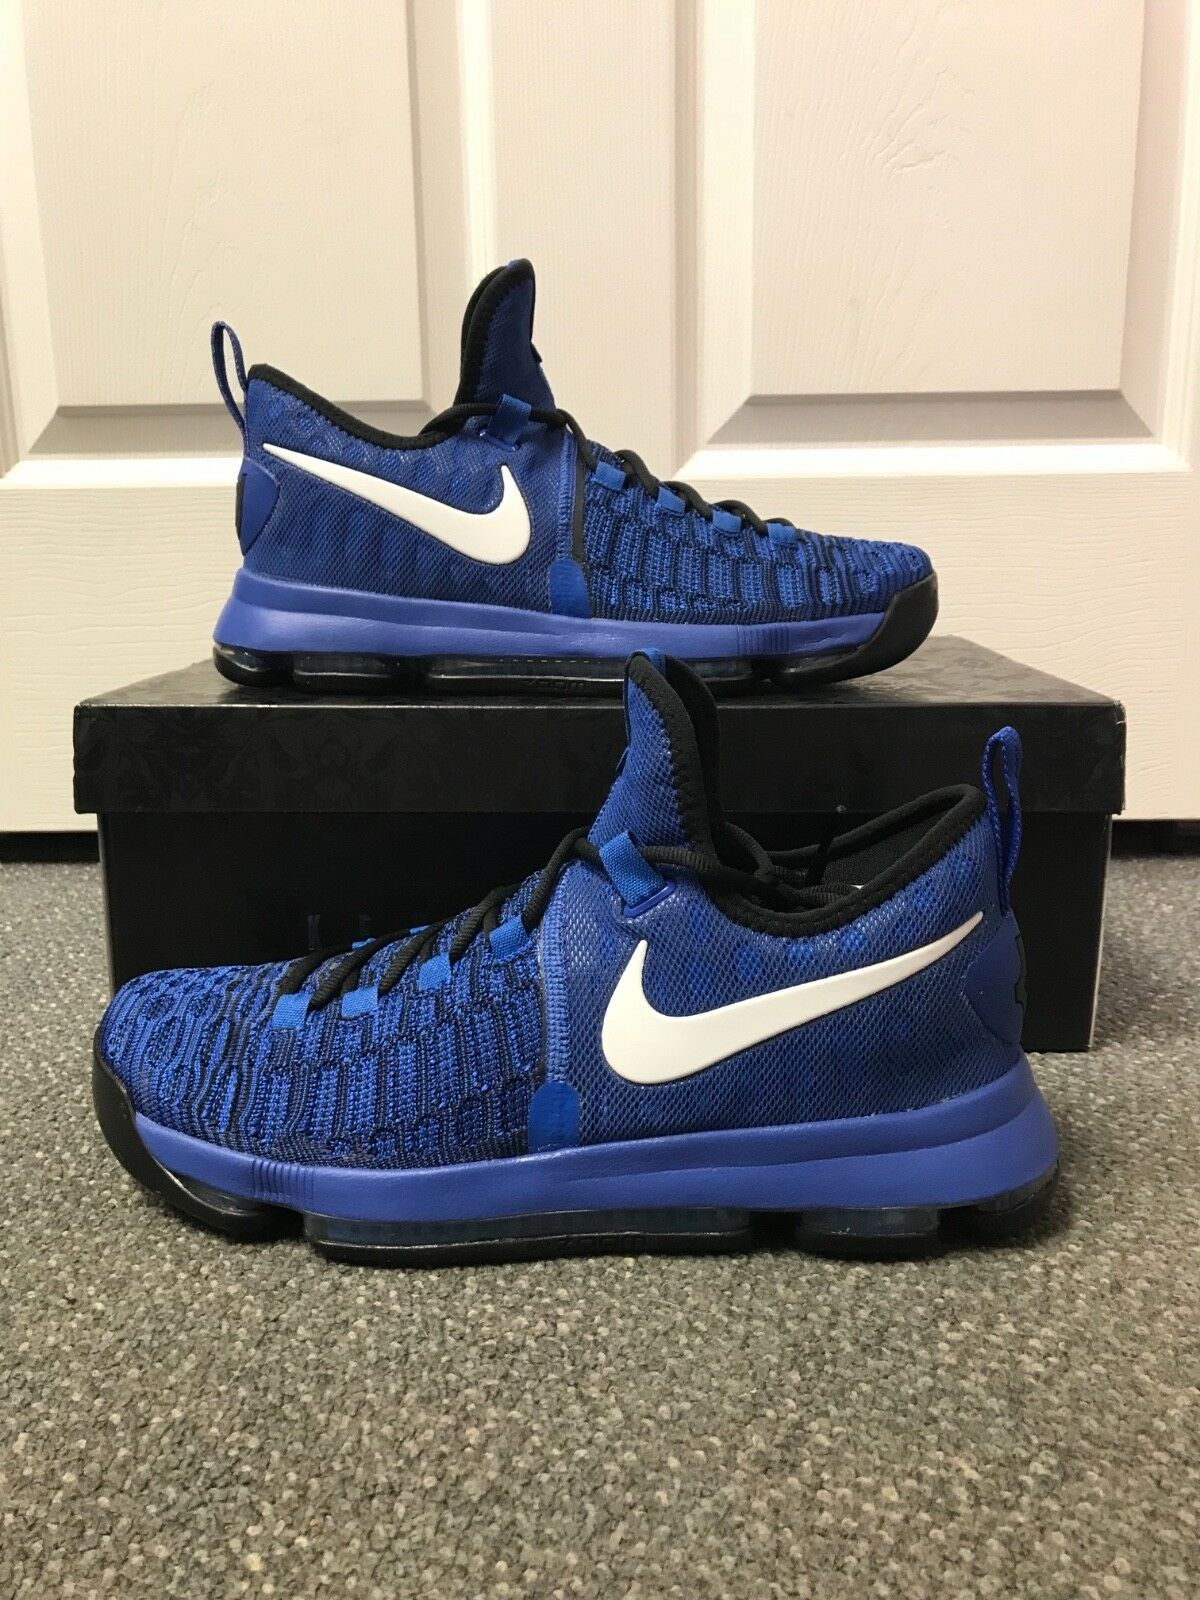 Great discount Nike Zoom KD 9 IX Game Royal Blue Black 100% Authentic Comfortable